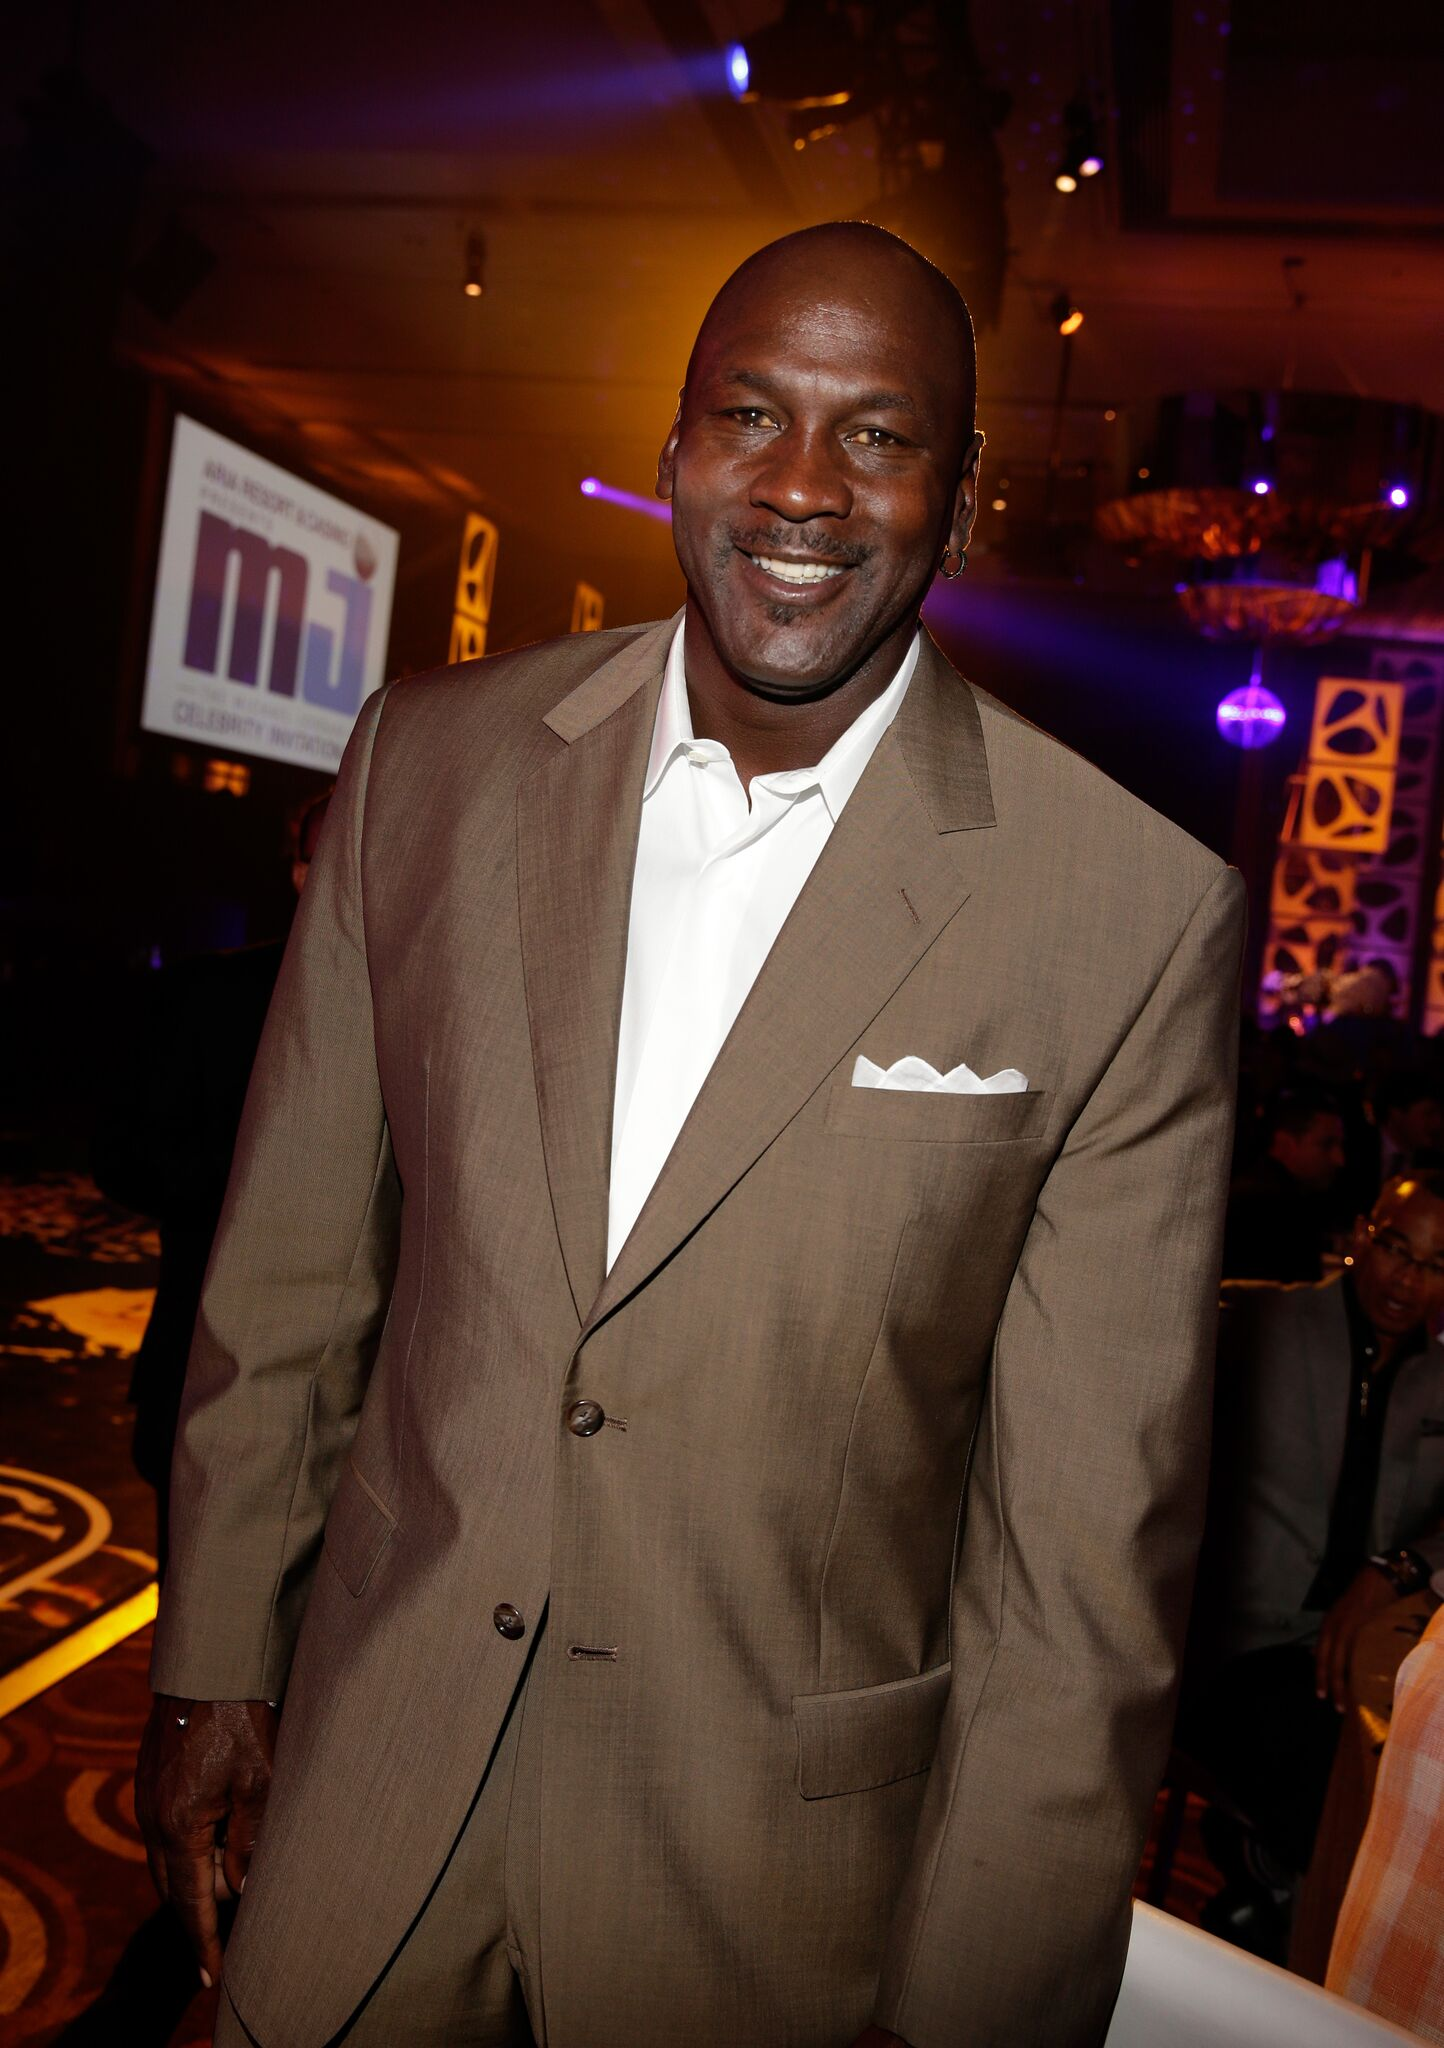 NBA legend and tournament host Michael Jordan attends the 13th annual Michael Jordan Celebrity Invitational gala at the ARIA Resort & Casino at CityCenter on April 4, 2014 | Photo: Getty Images